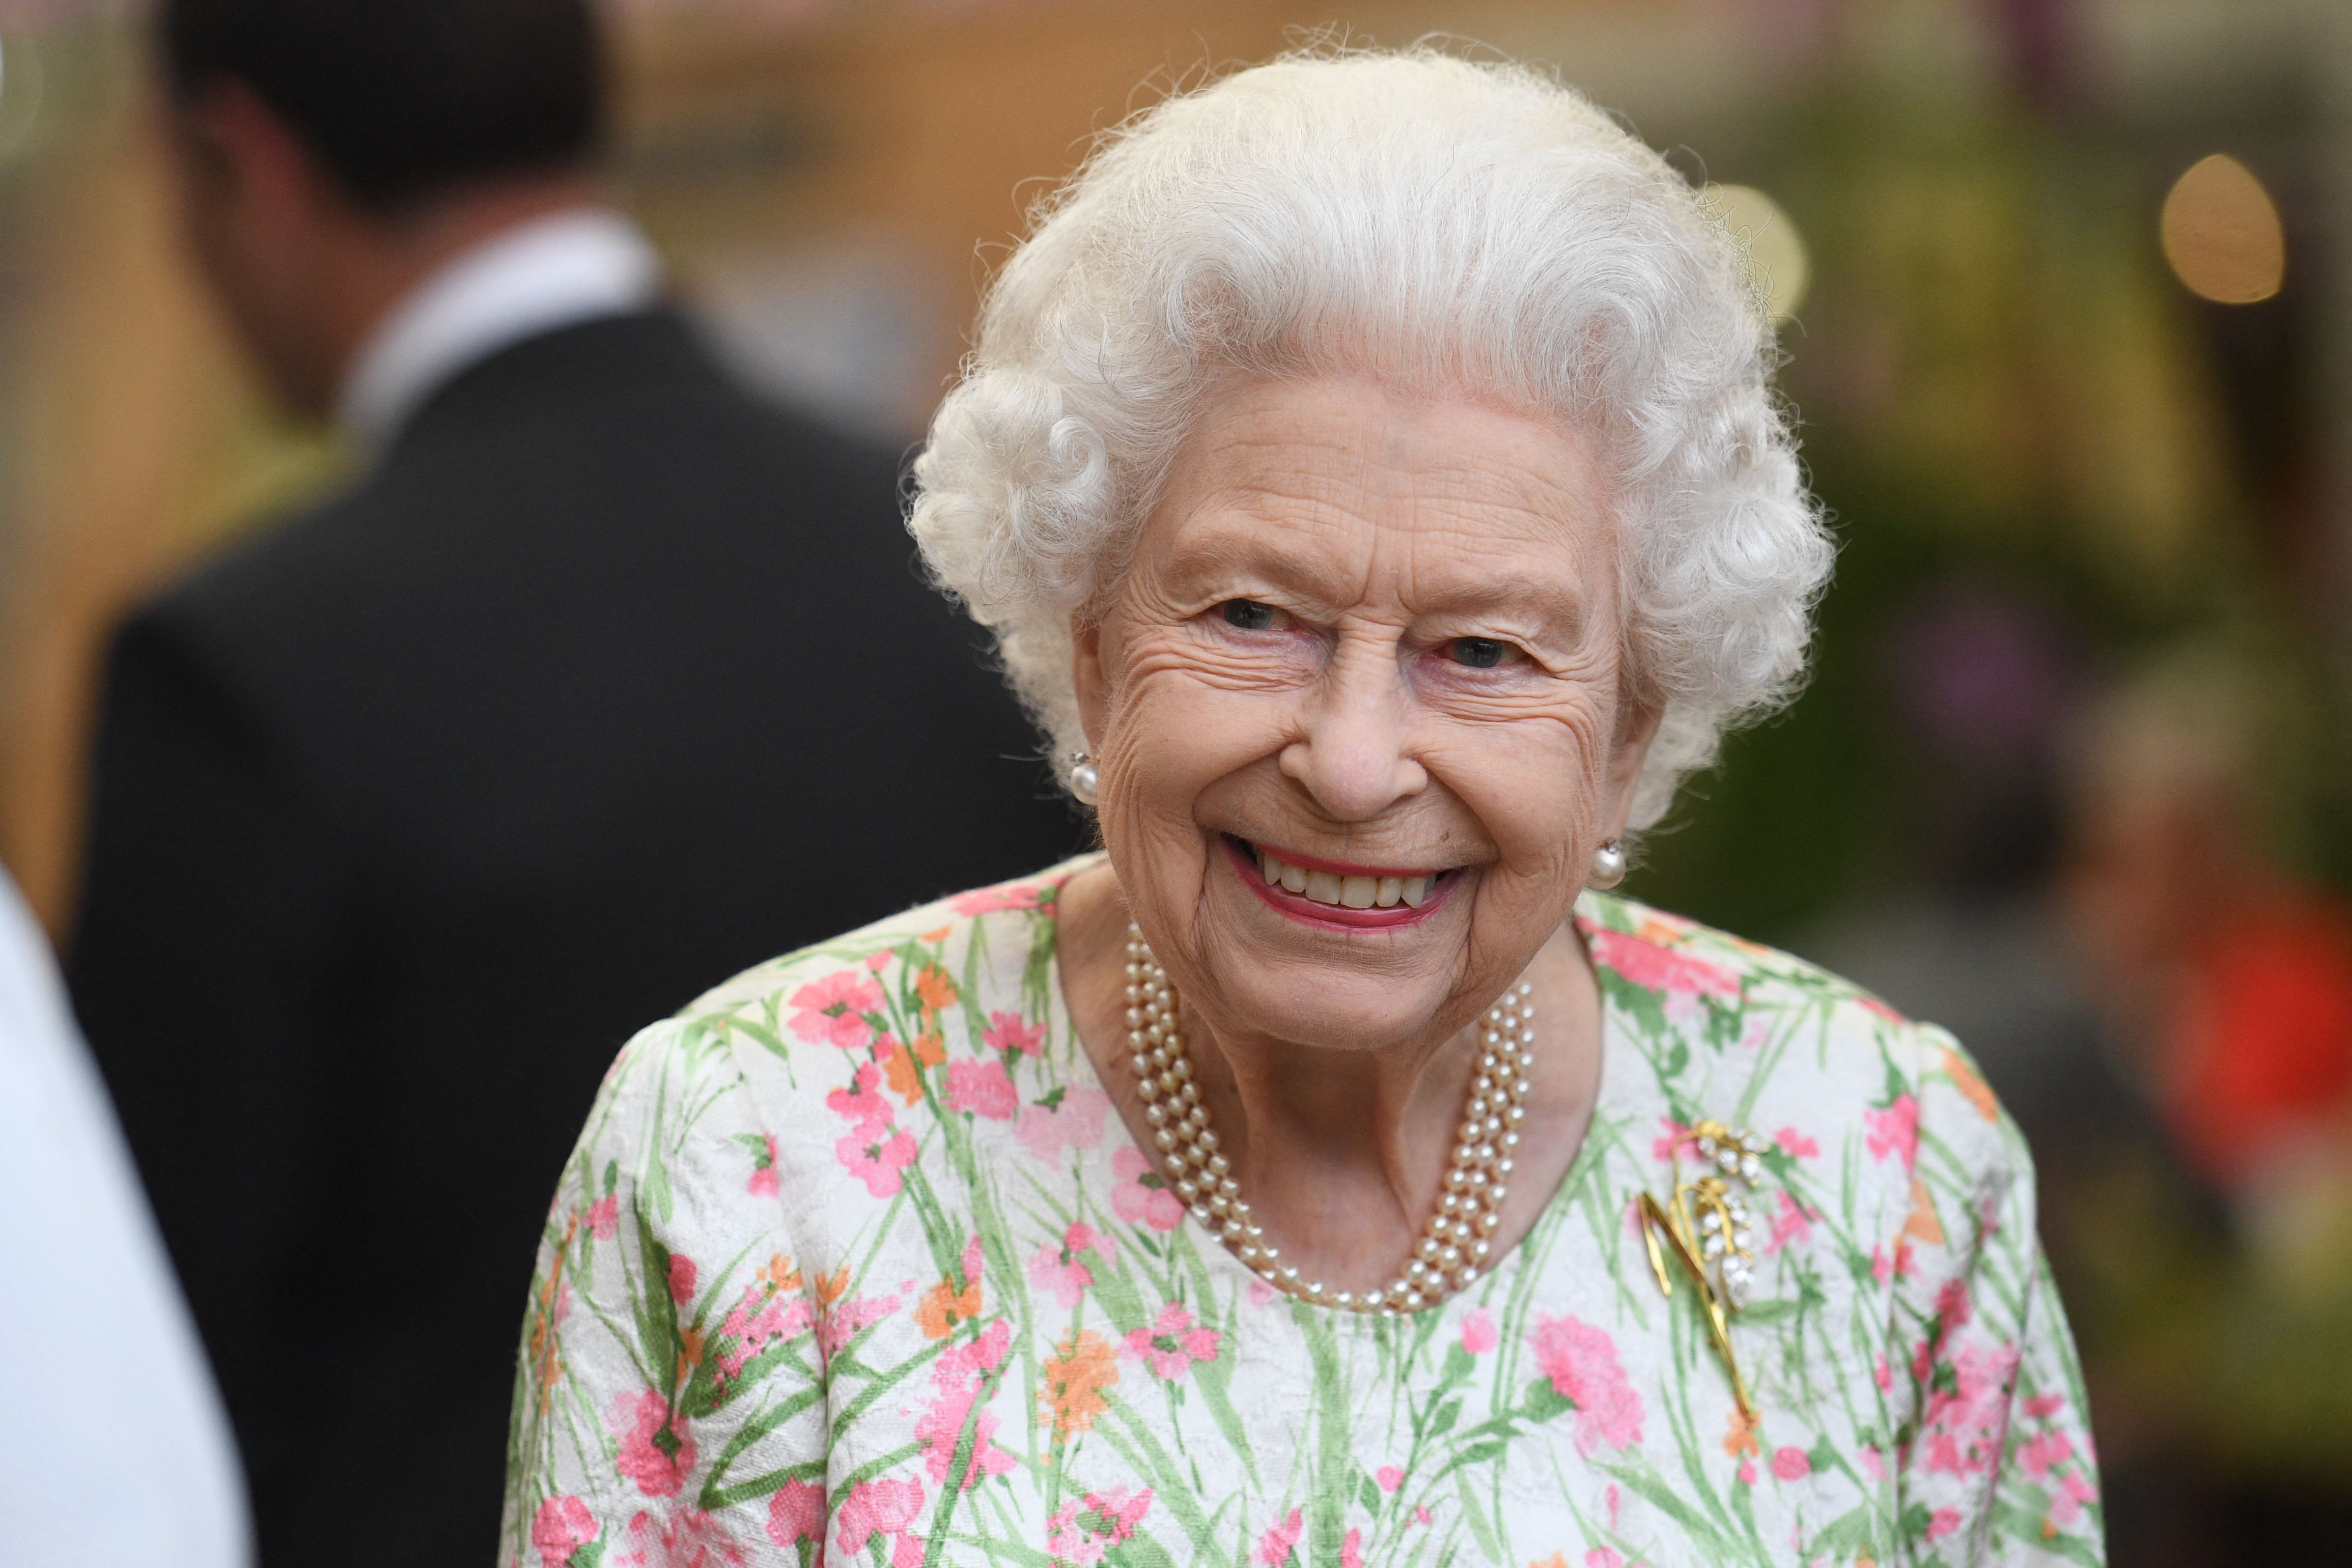 In this file photo taken on June 11, 2021, Britain's Queen Elizabeth II smiles as she attends an event in celebration of The Big Lunch initiative at The Eden Project, near St Austell in southwest England.